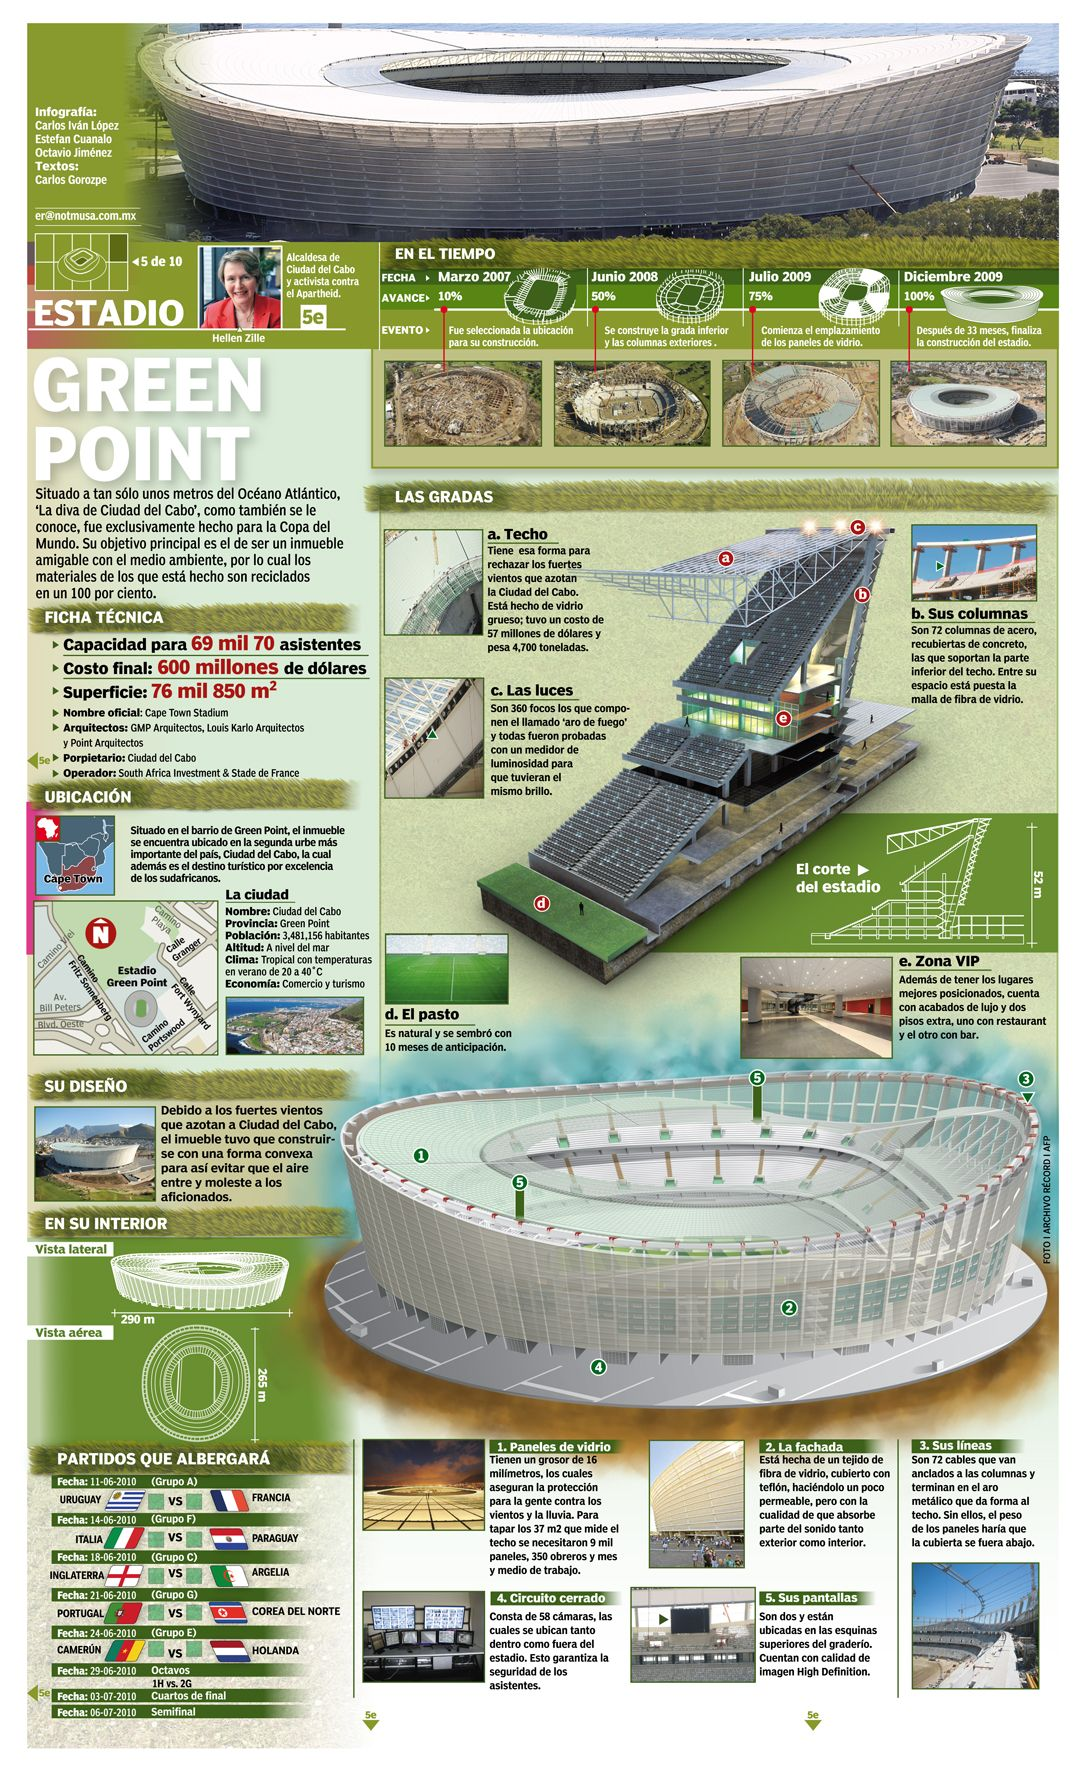 Estadio Green Point-Infografia